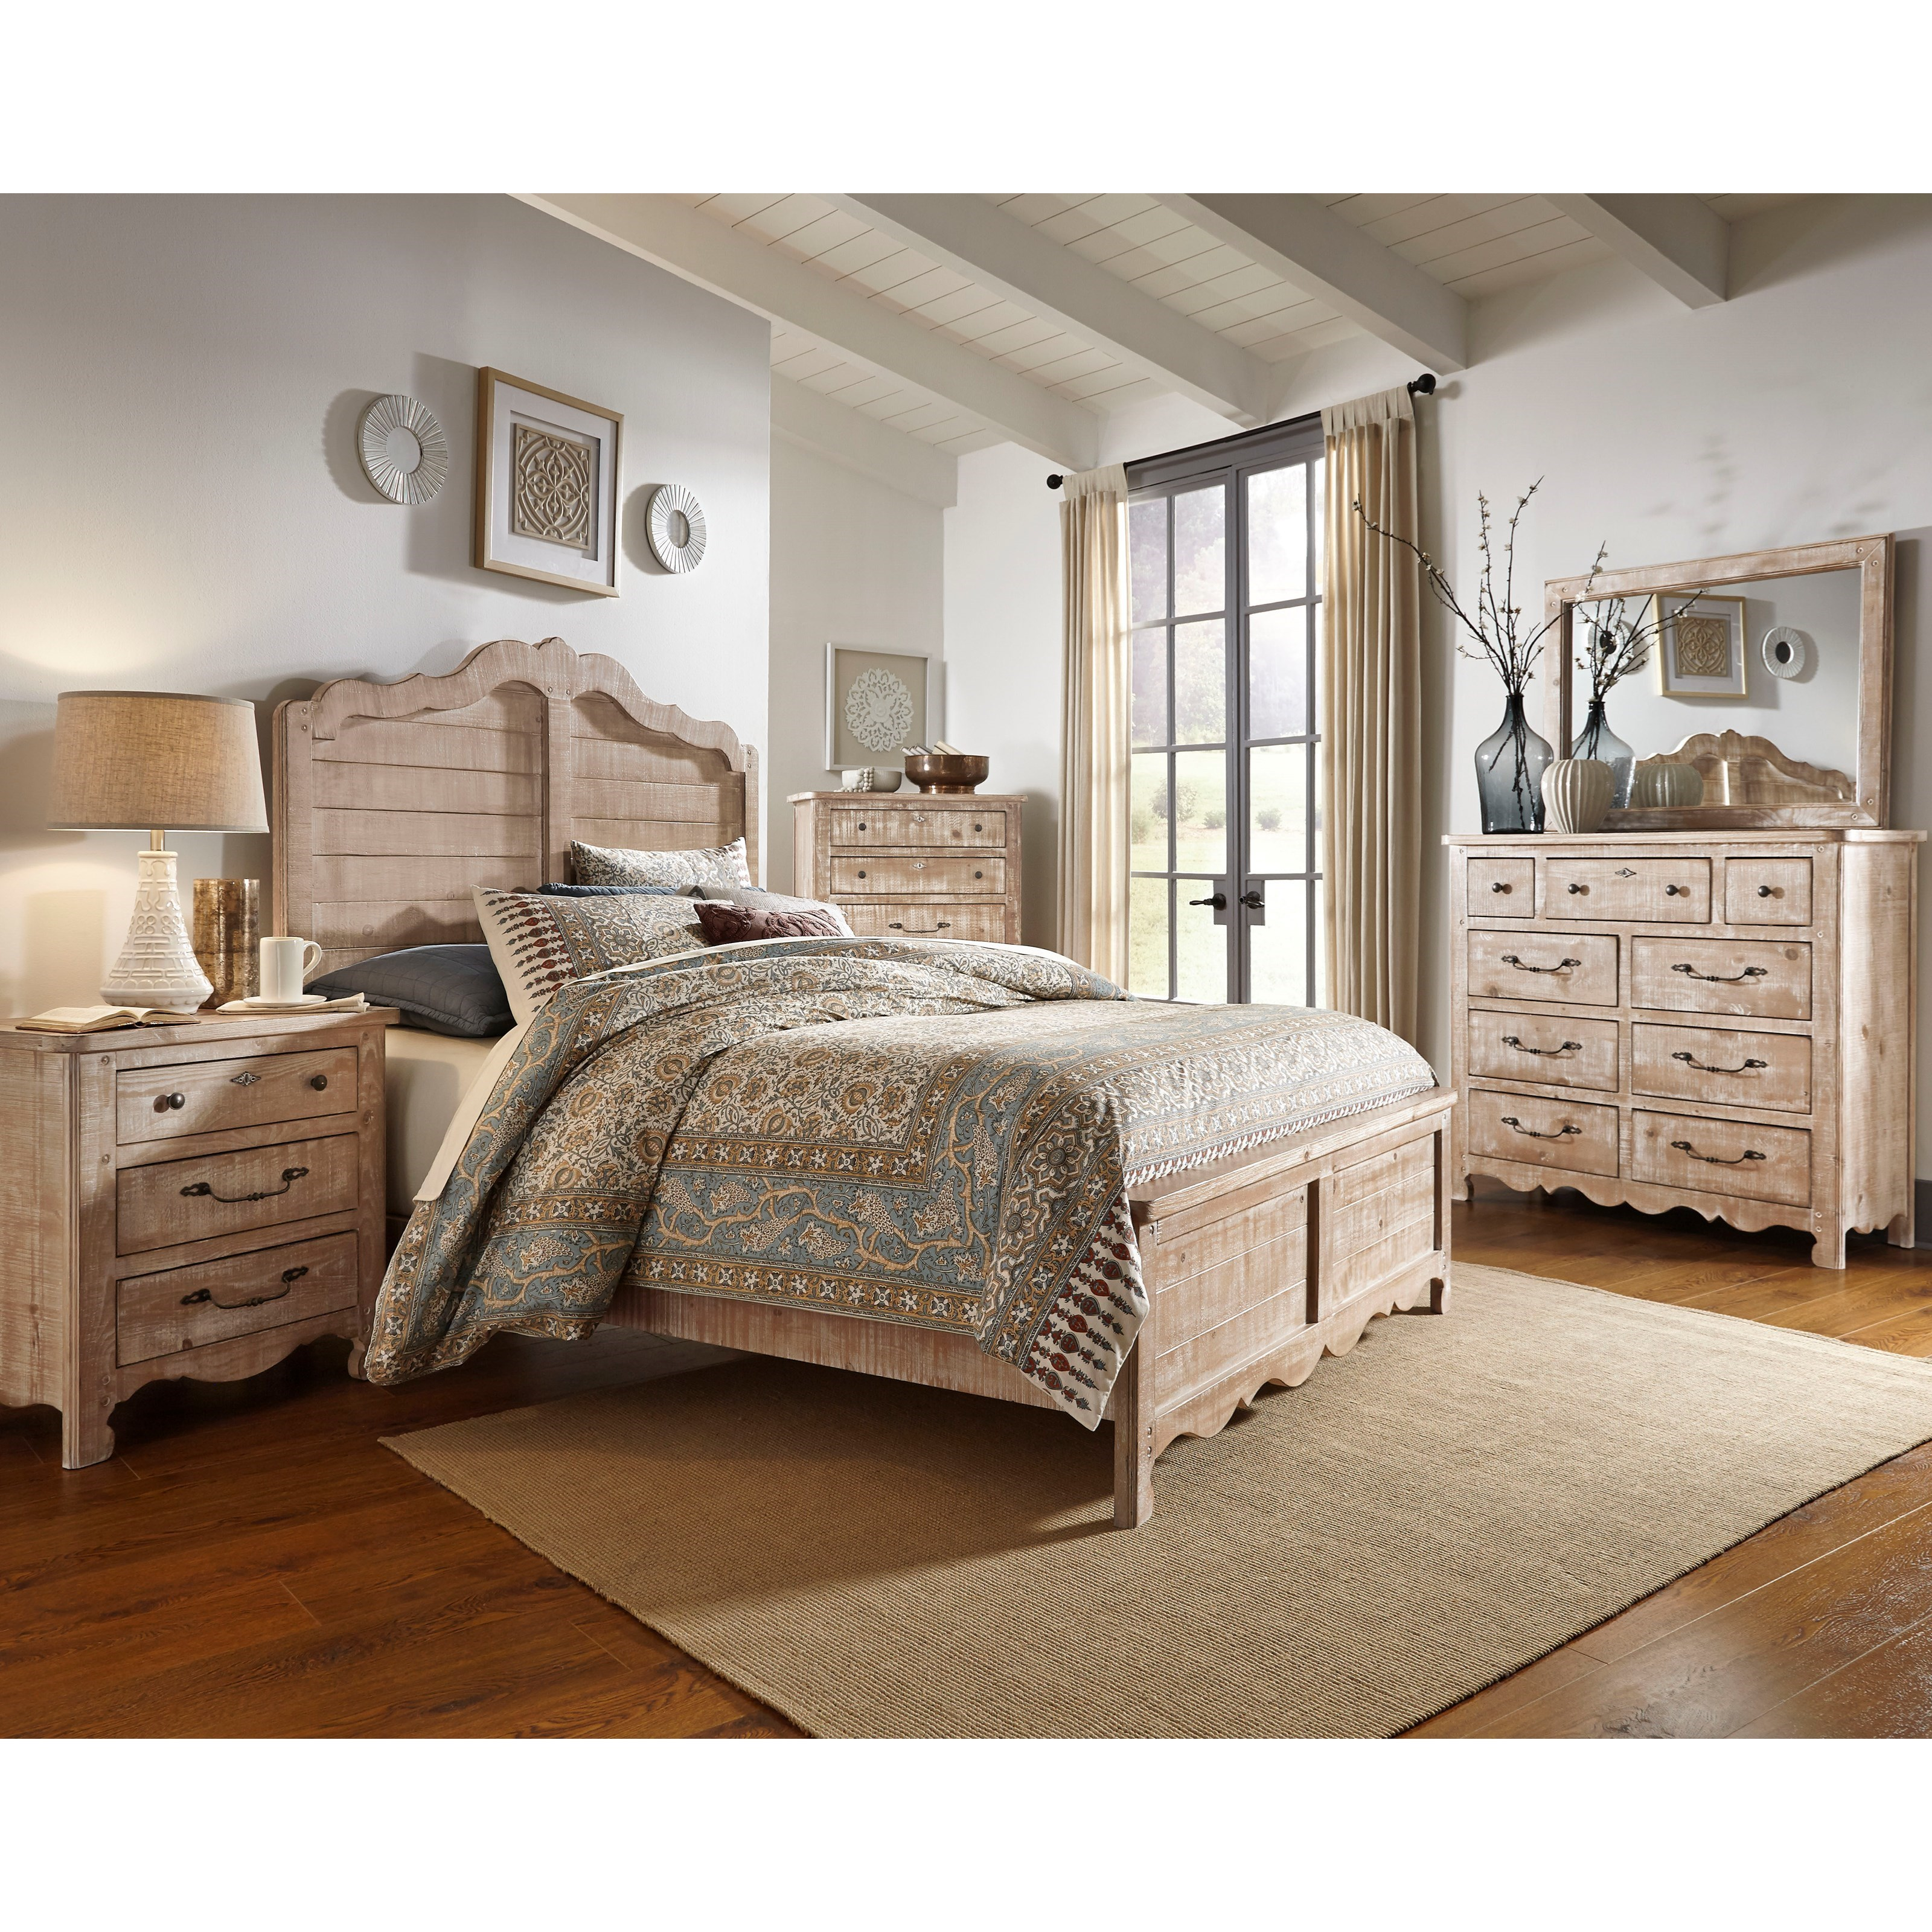 Chatsworth Queen Bedroom Group by Progressive Furniture at Catalog Outlet